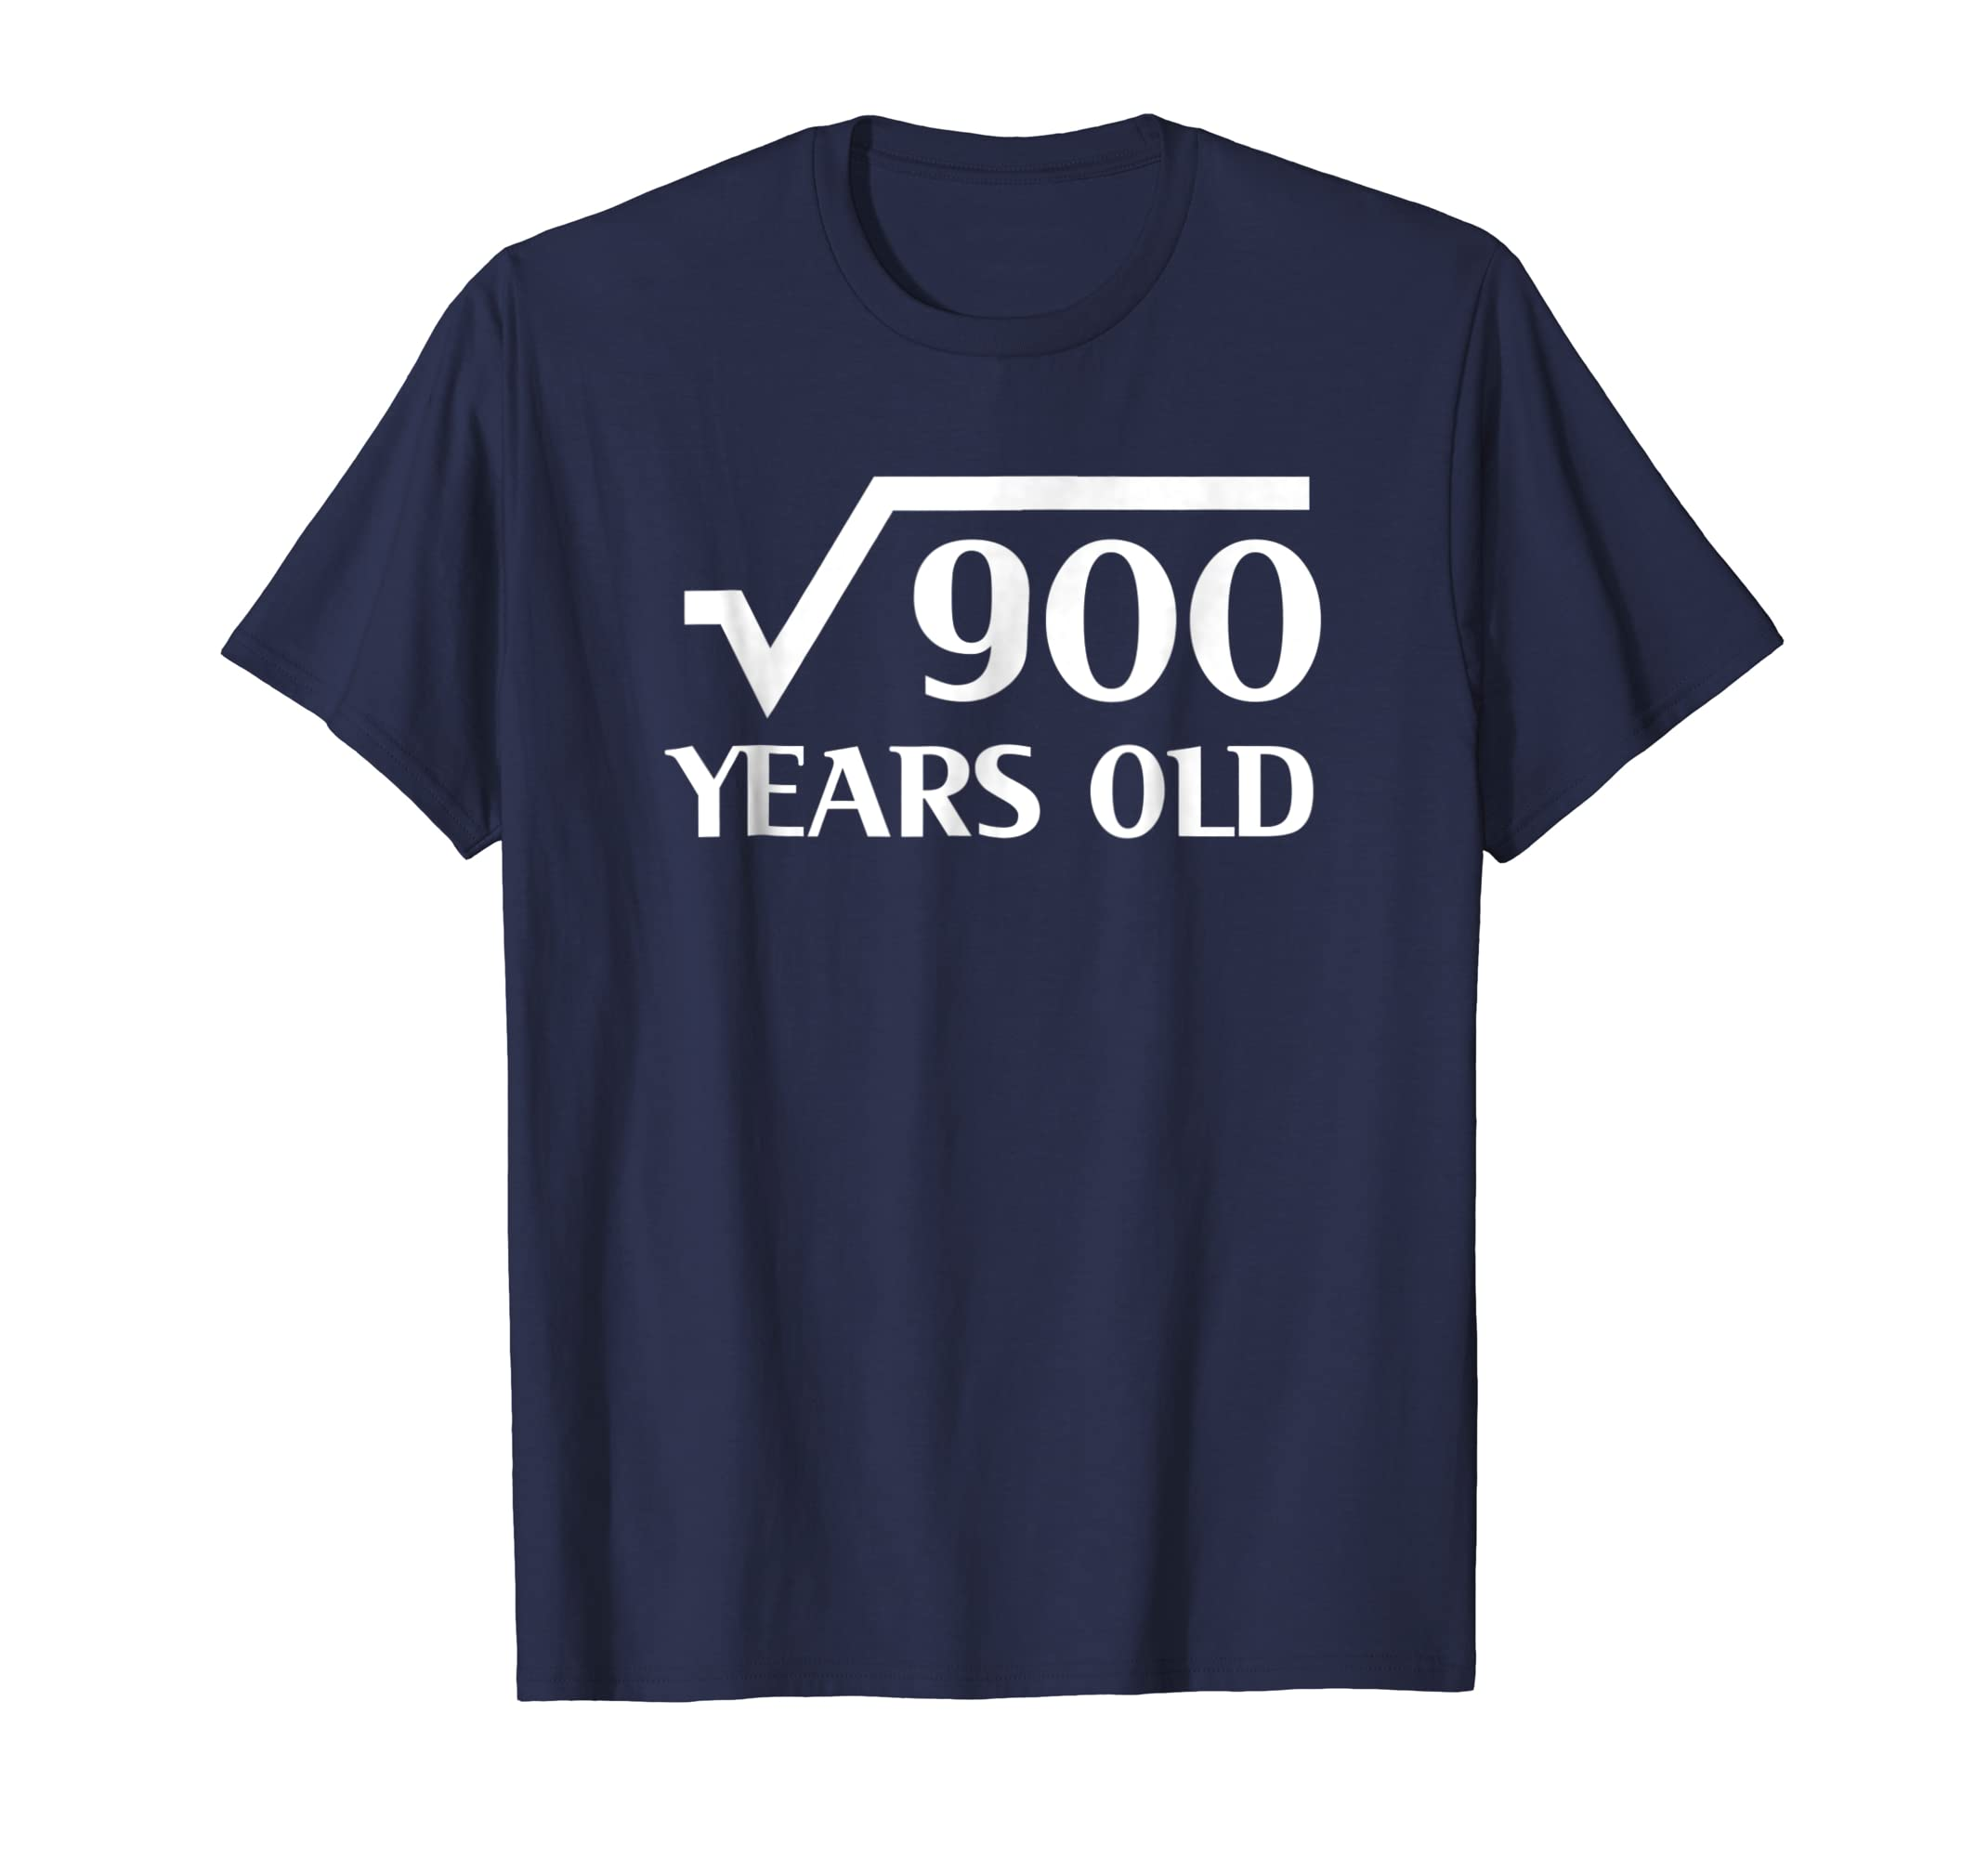 30th Happy Birthday Shirt 30 Years Old Square Root of 900-ln